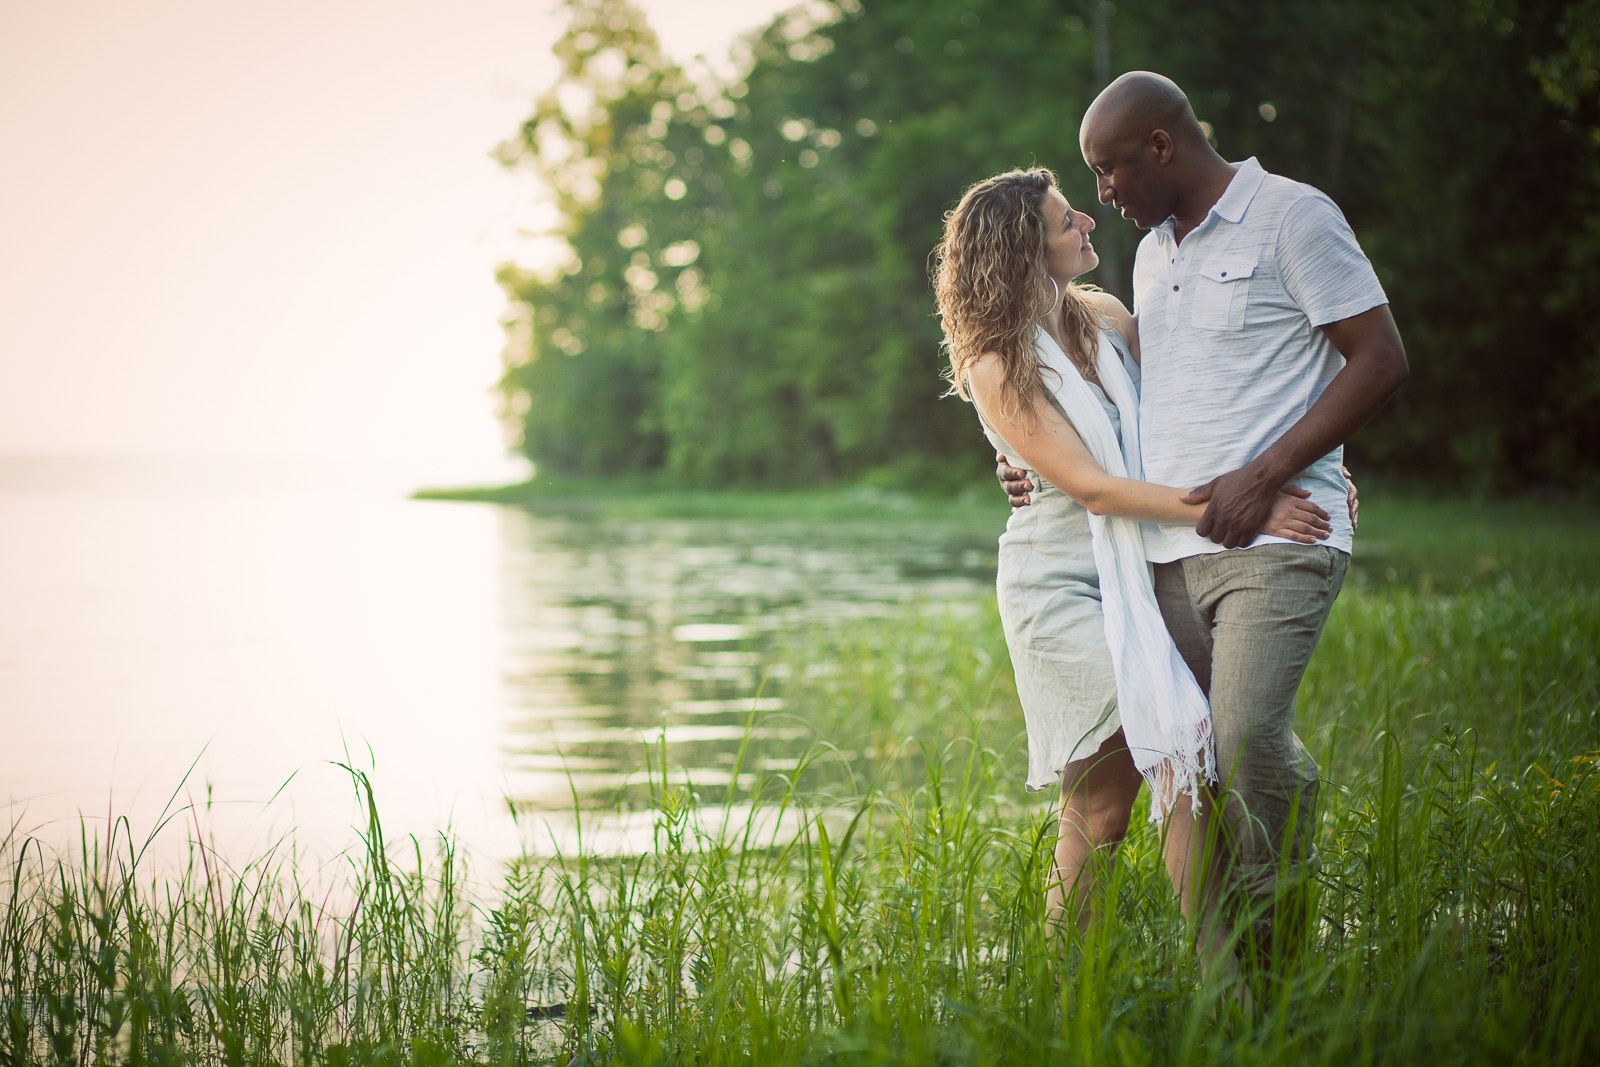 bianca-morello-photography-montreal-couple-engagement-wedding-12.jpg